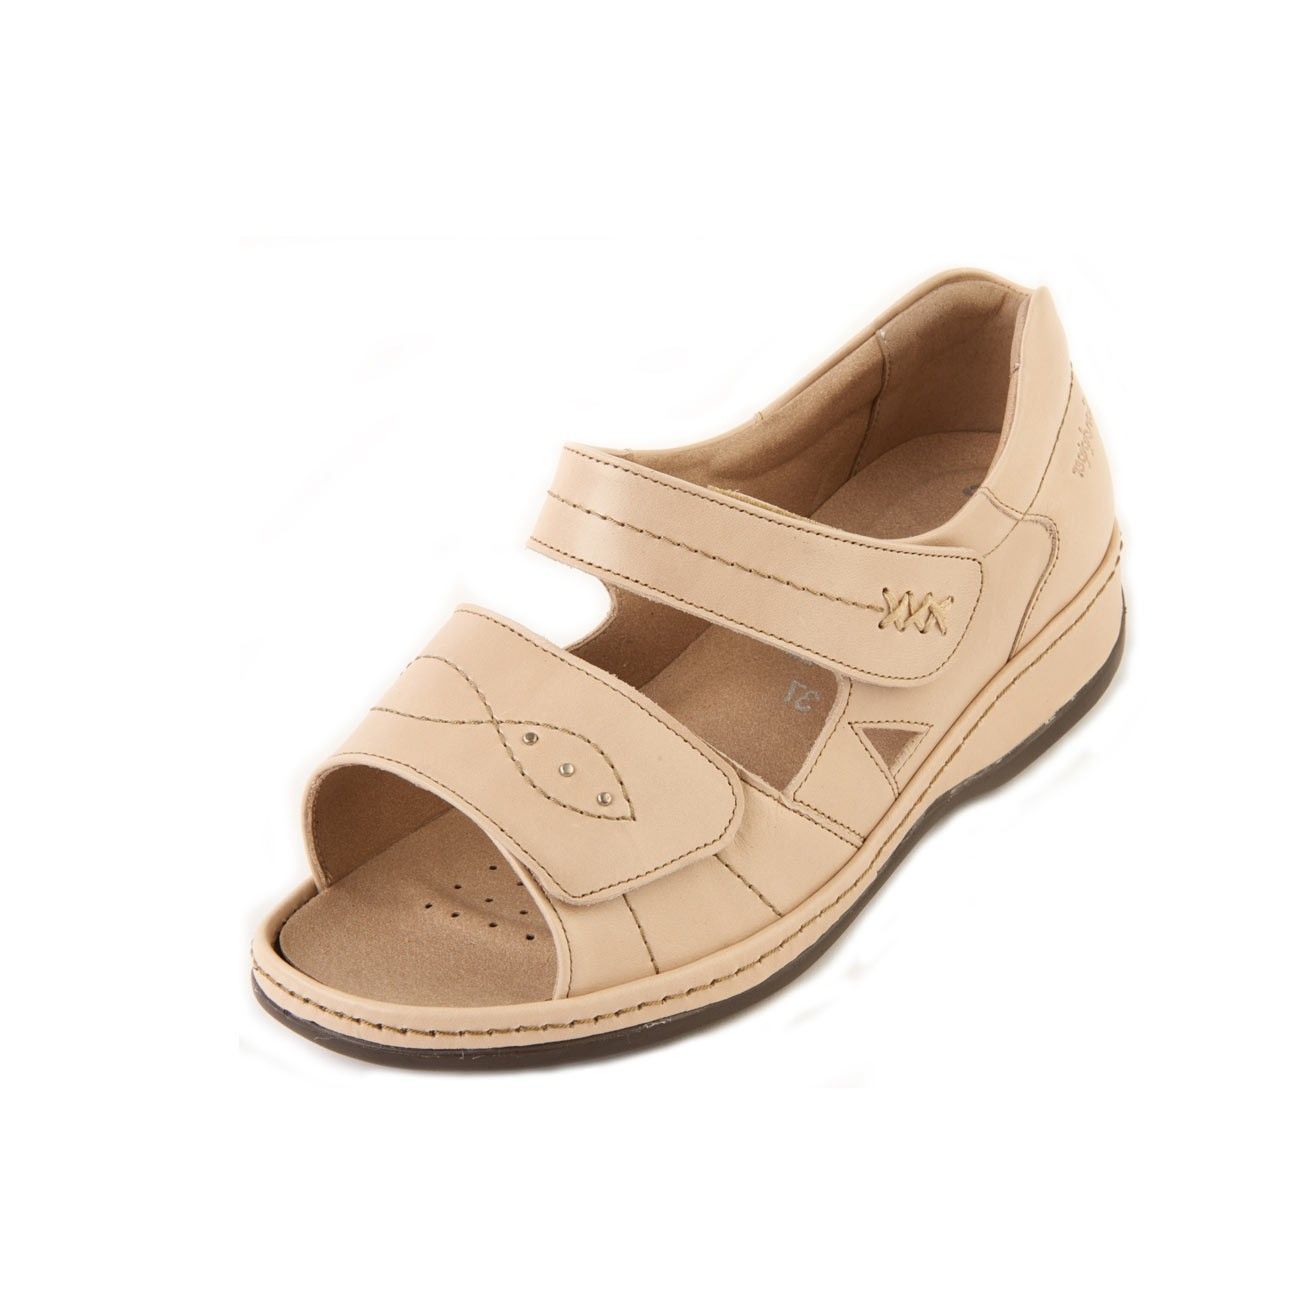 5ffab31510d Cilla Ladies Extra Extra Wide Sandal 6E - the support of the back-in heel